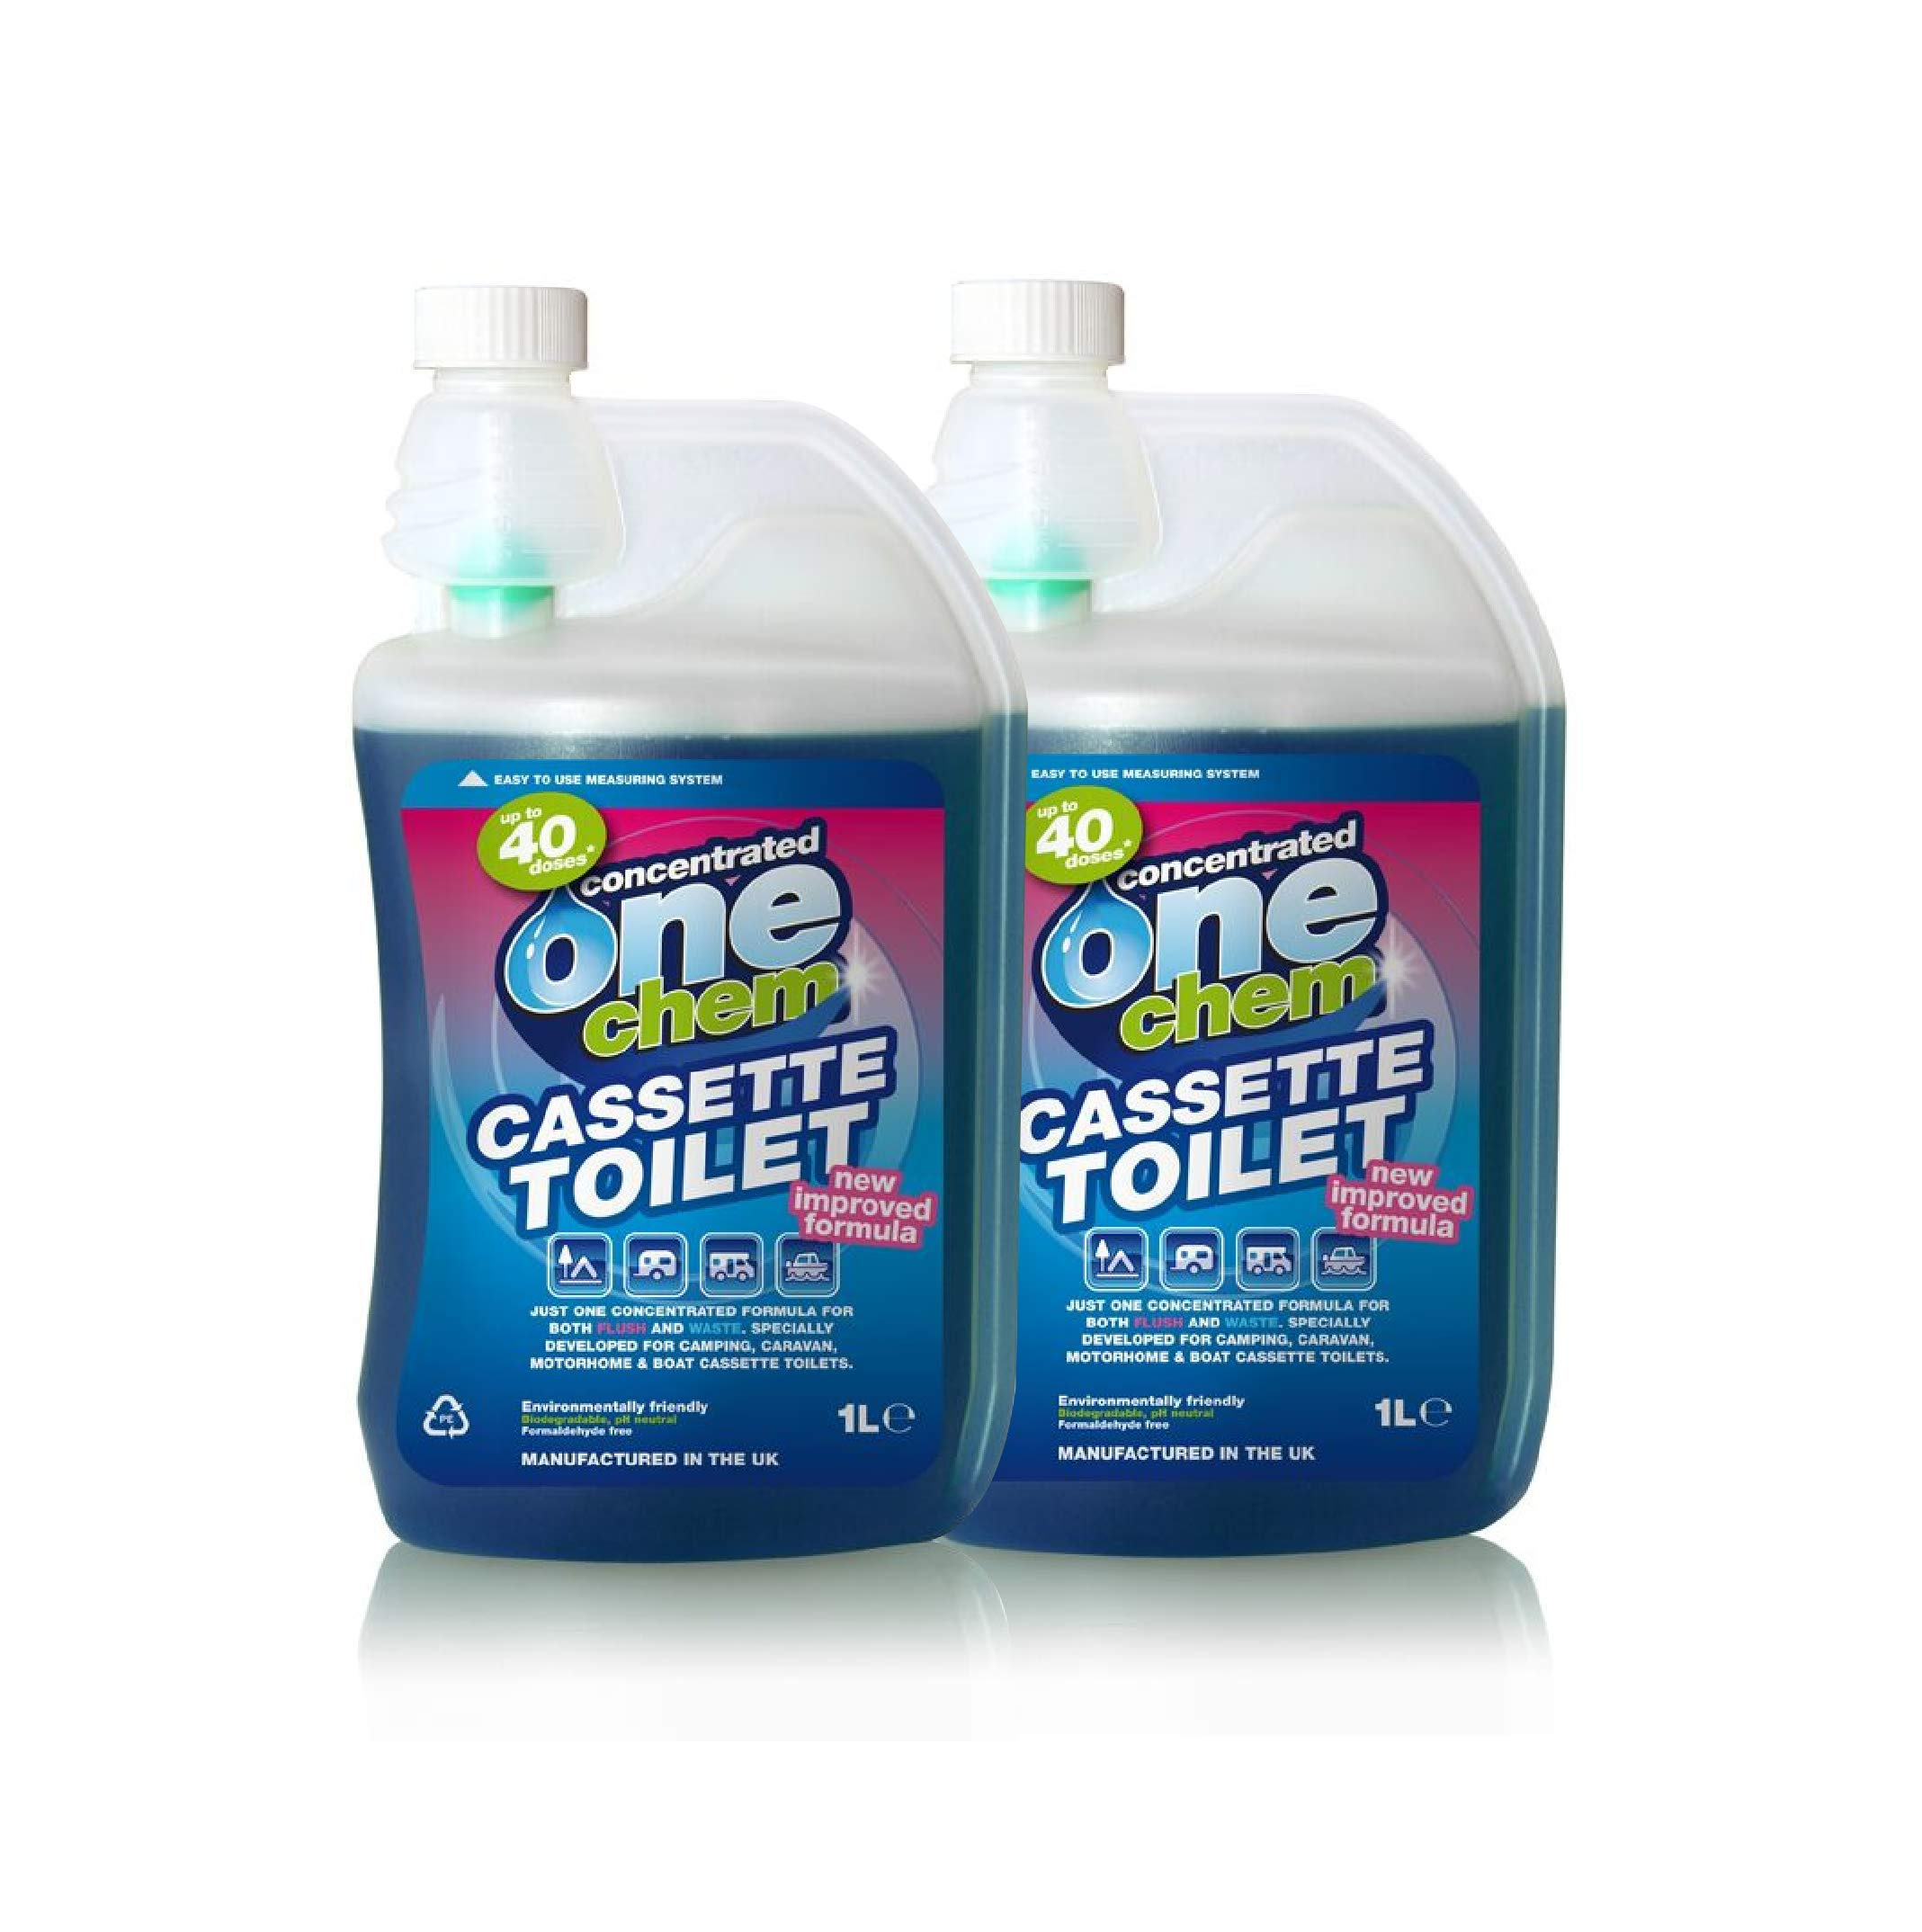 2 x One Chem Concentrated 2 in 1 PH Neutral Formula for Cassette Toilets 1